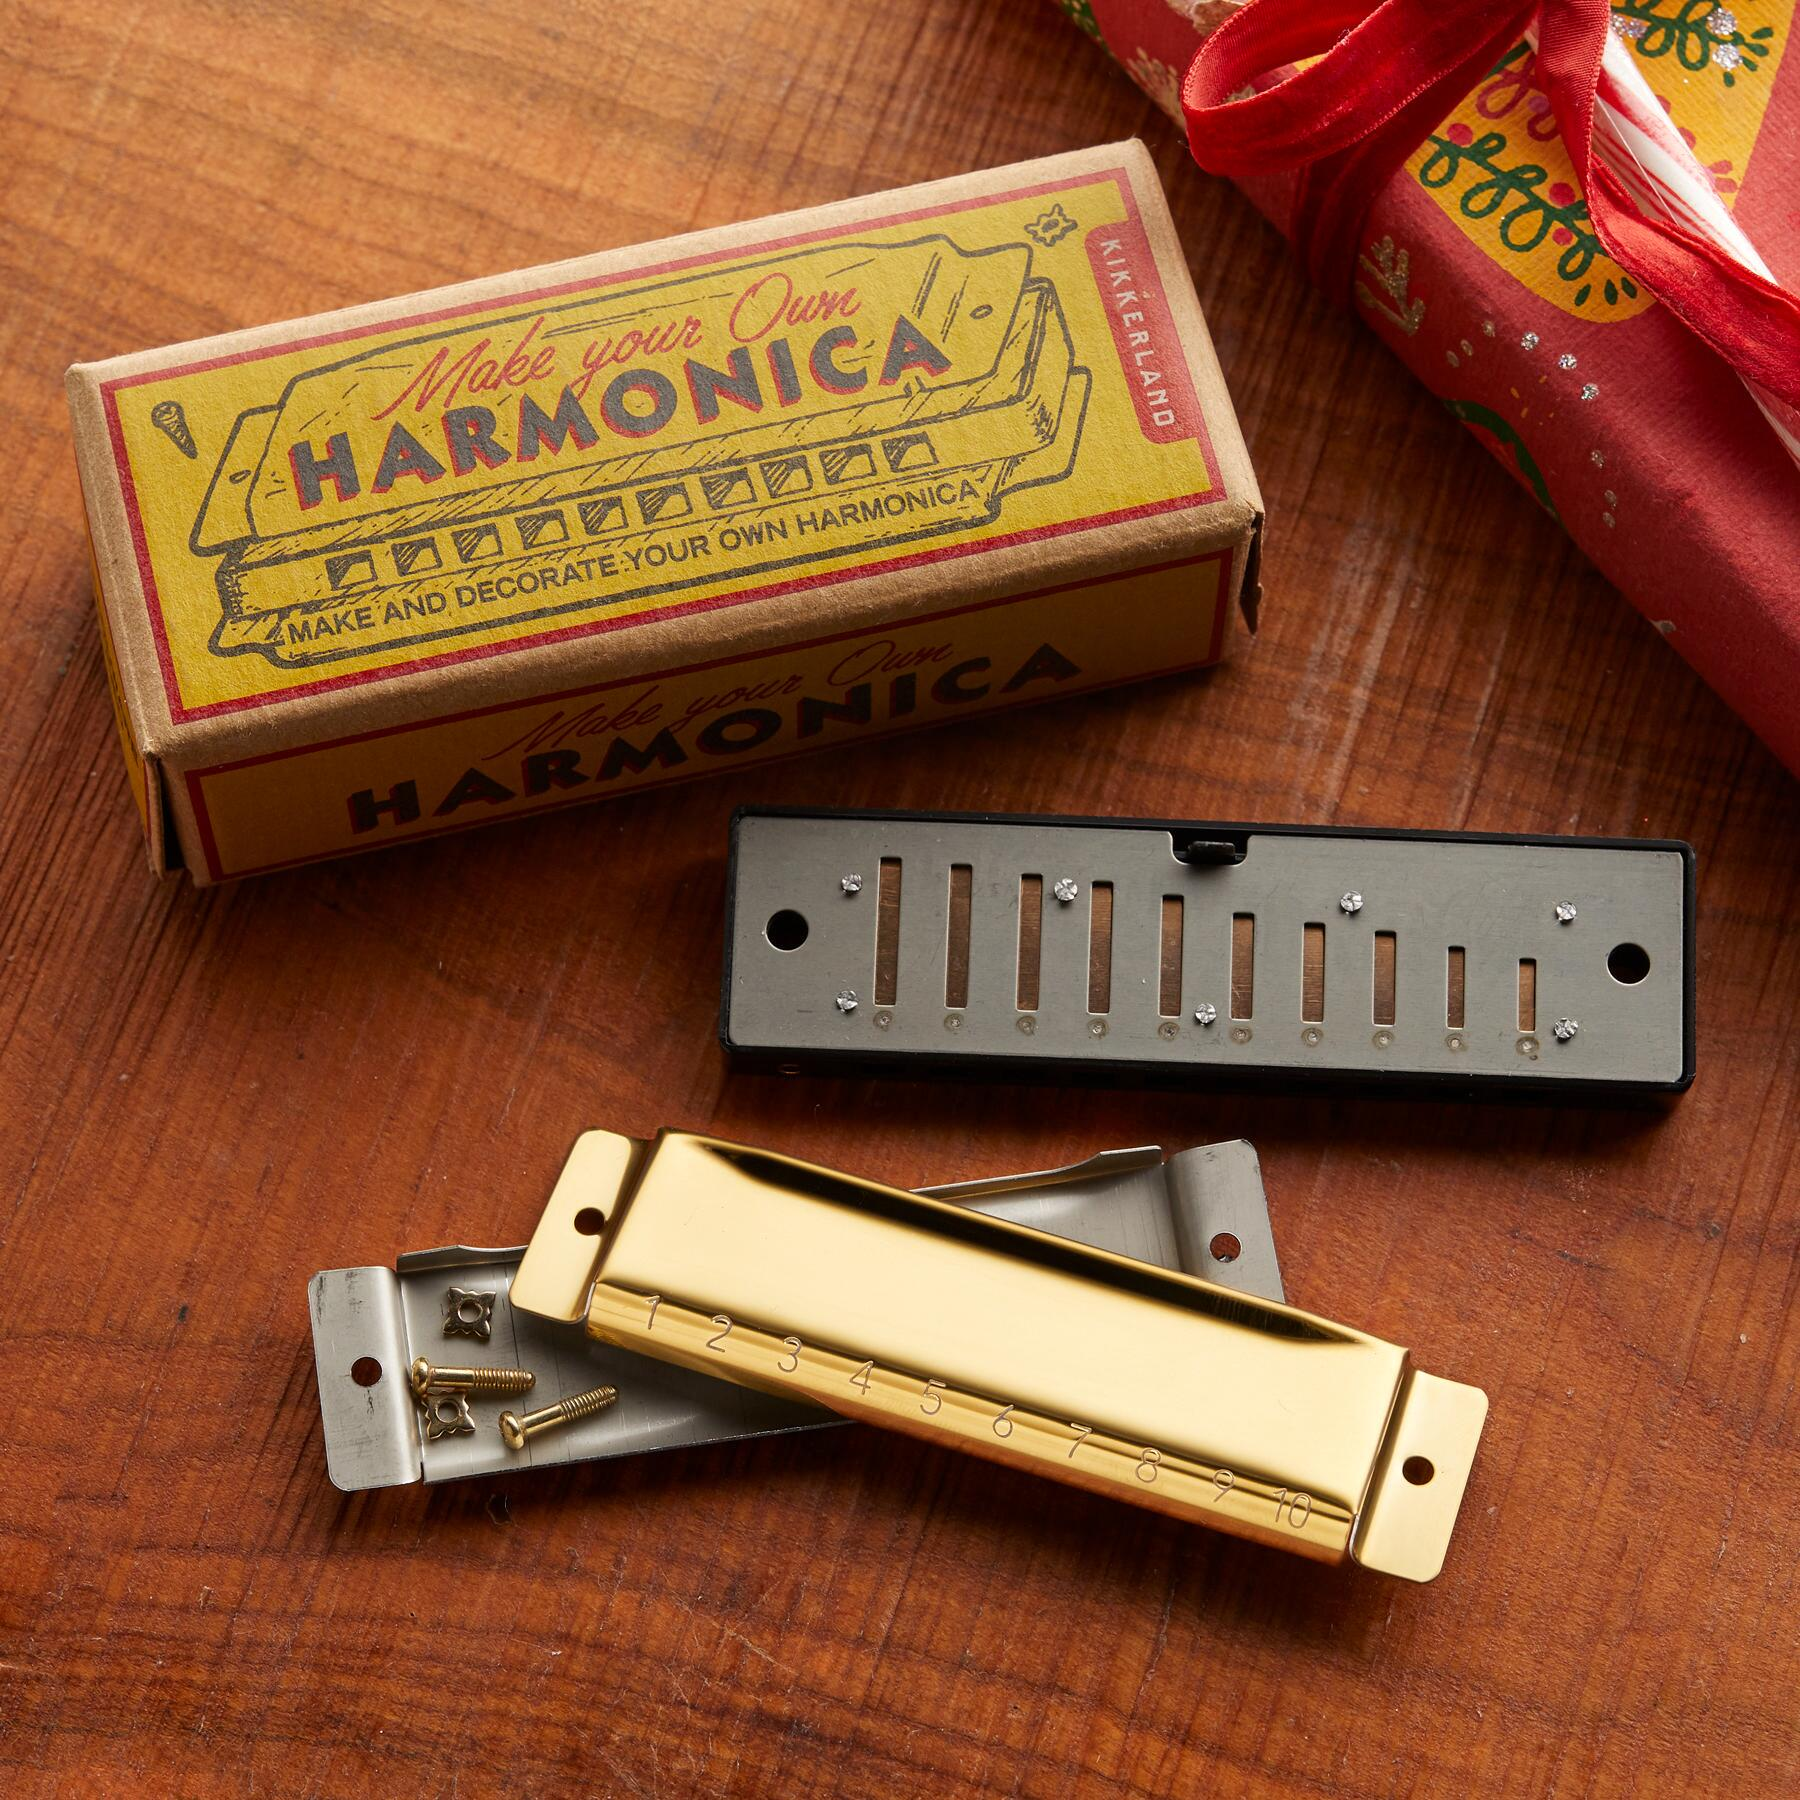 MAKE YOUR OWN HARMONICA: View 2